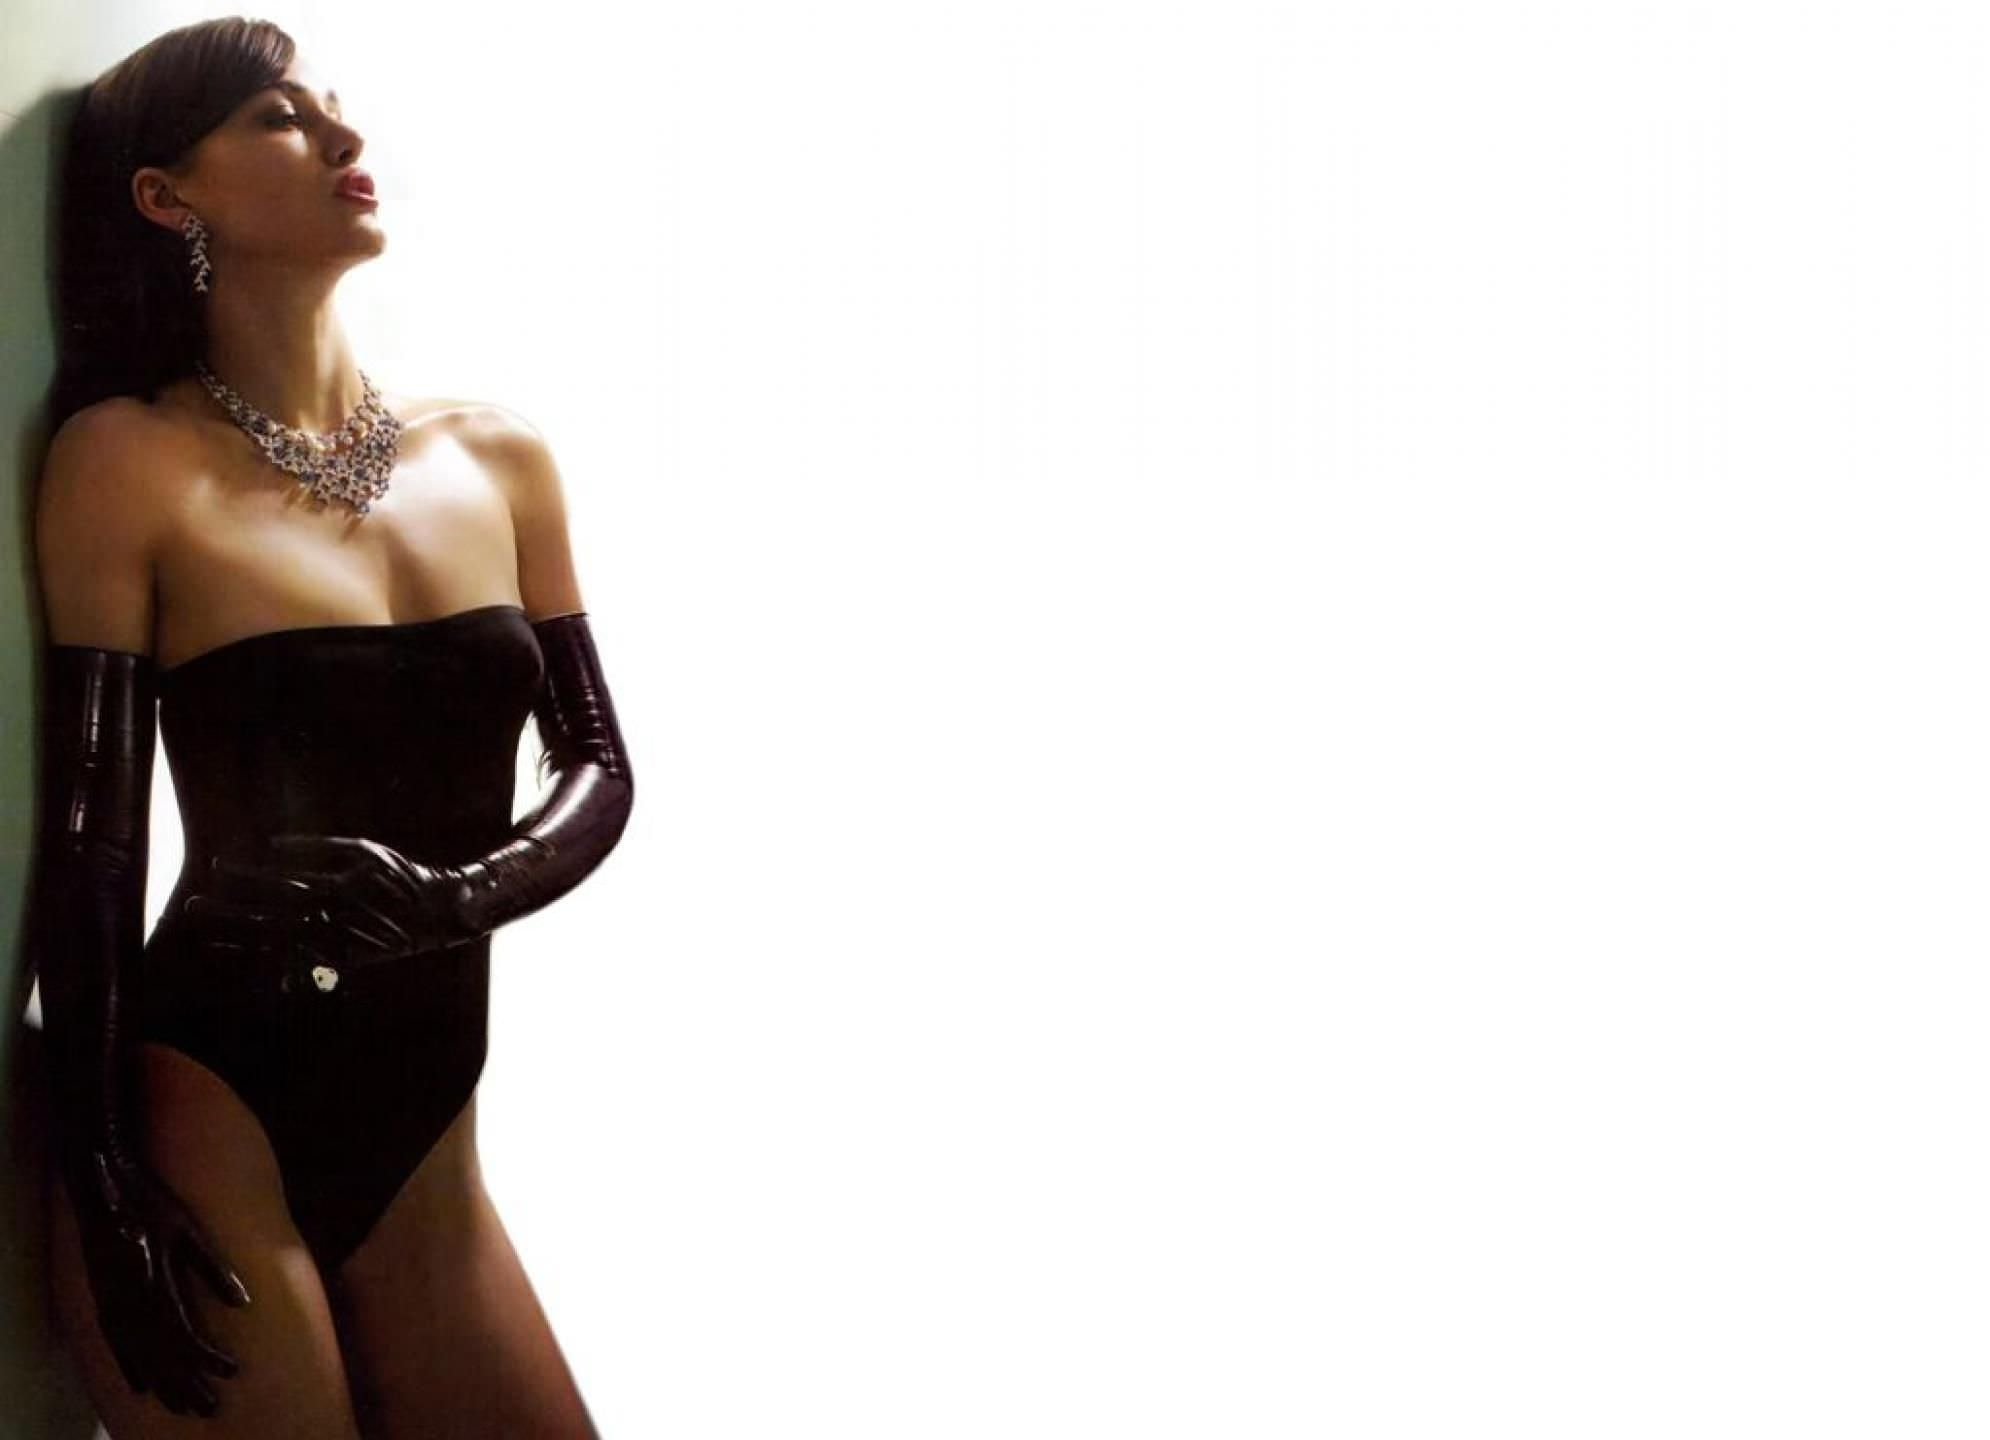 Keira Knightley Sexy Wallpaper Keira Knightley Female Wallpapers For Free Download About